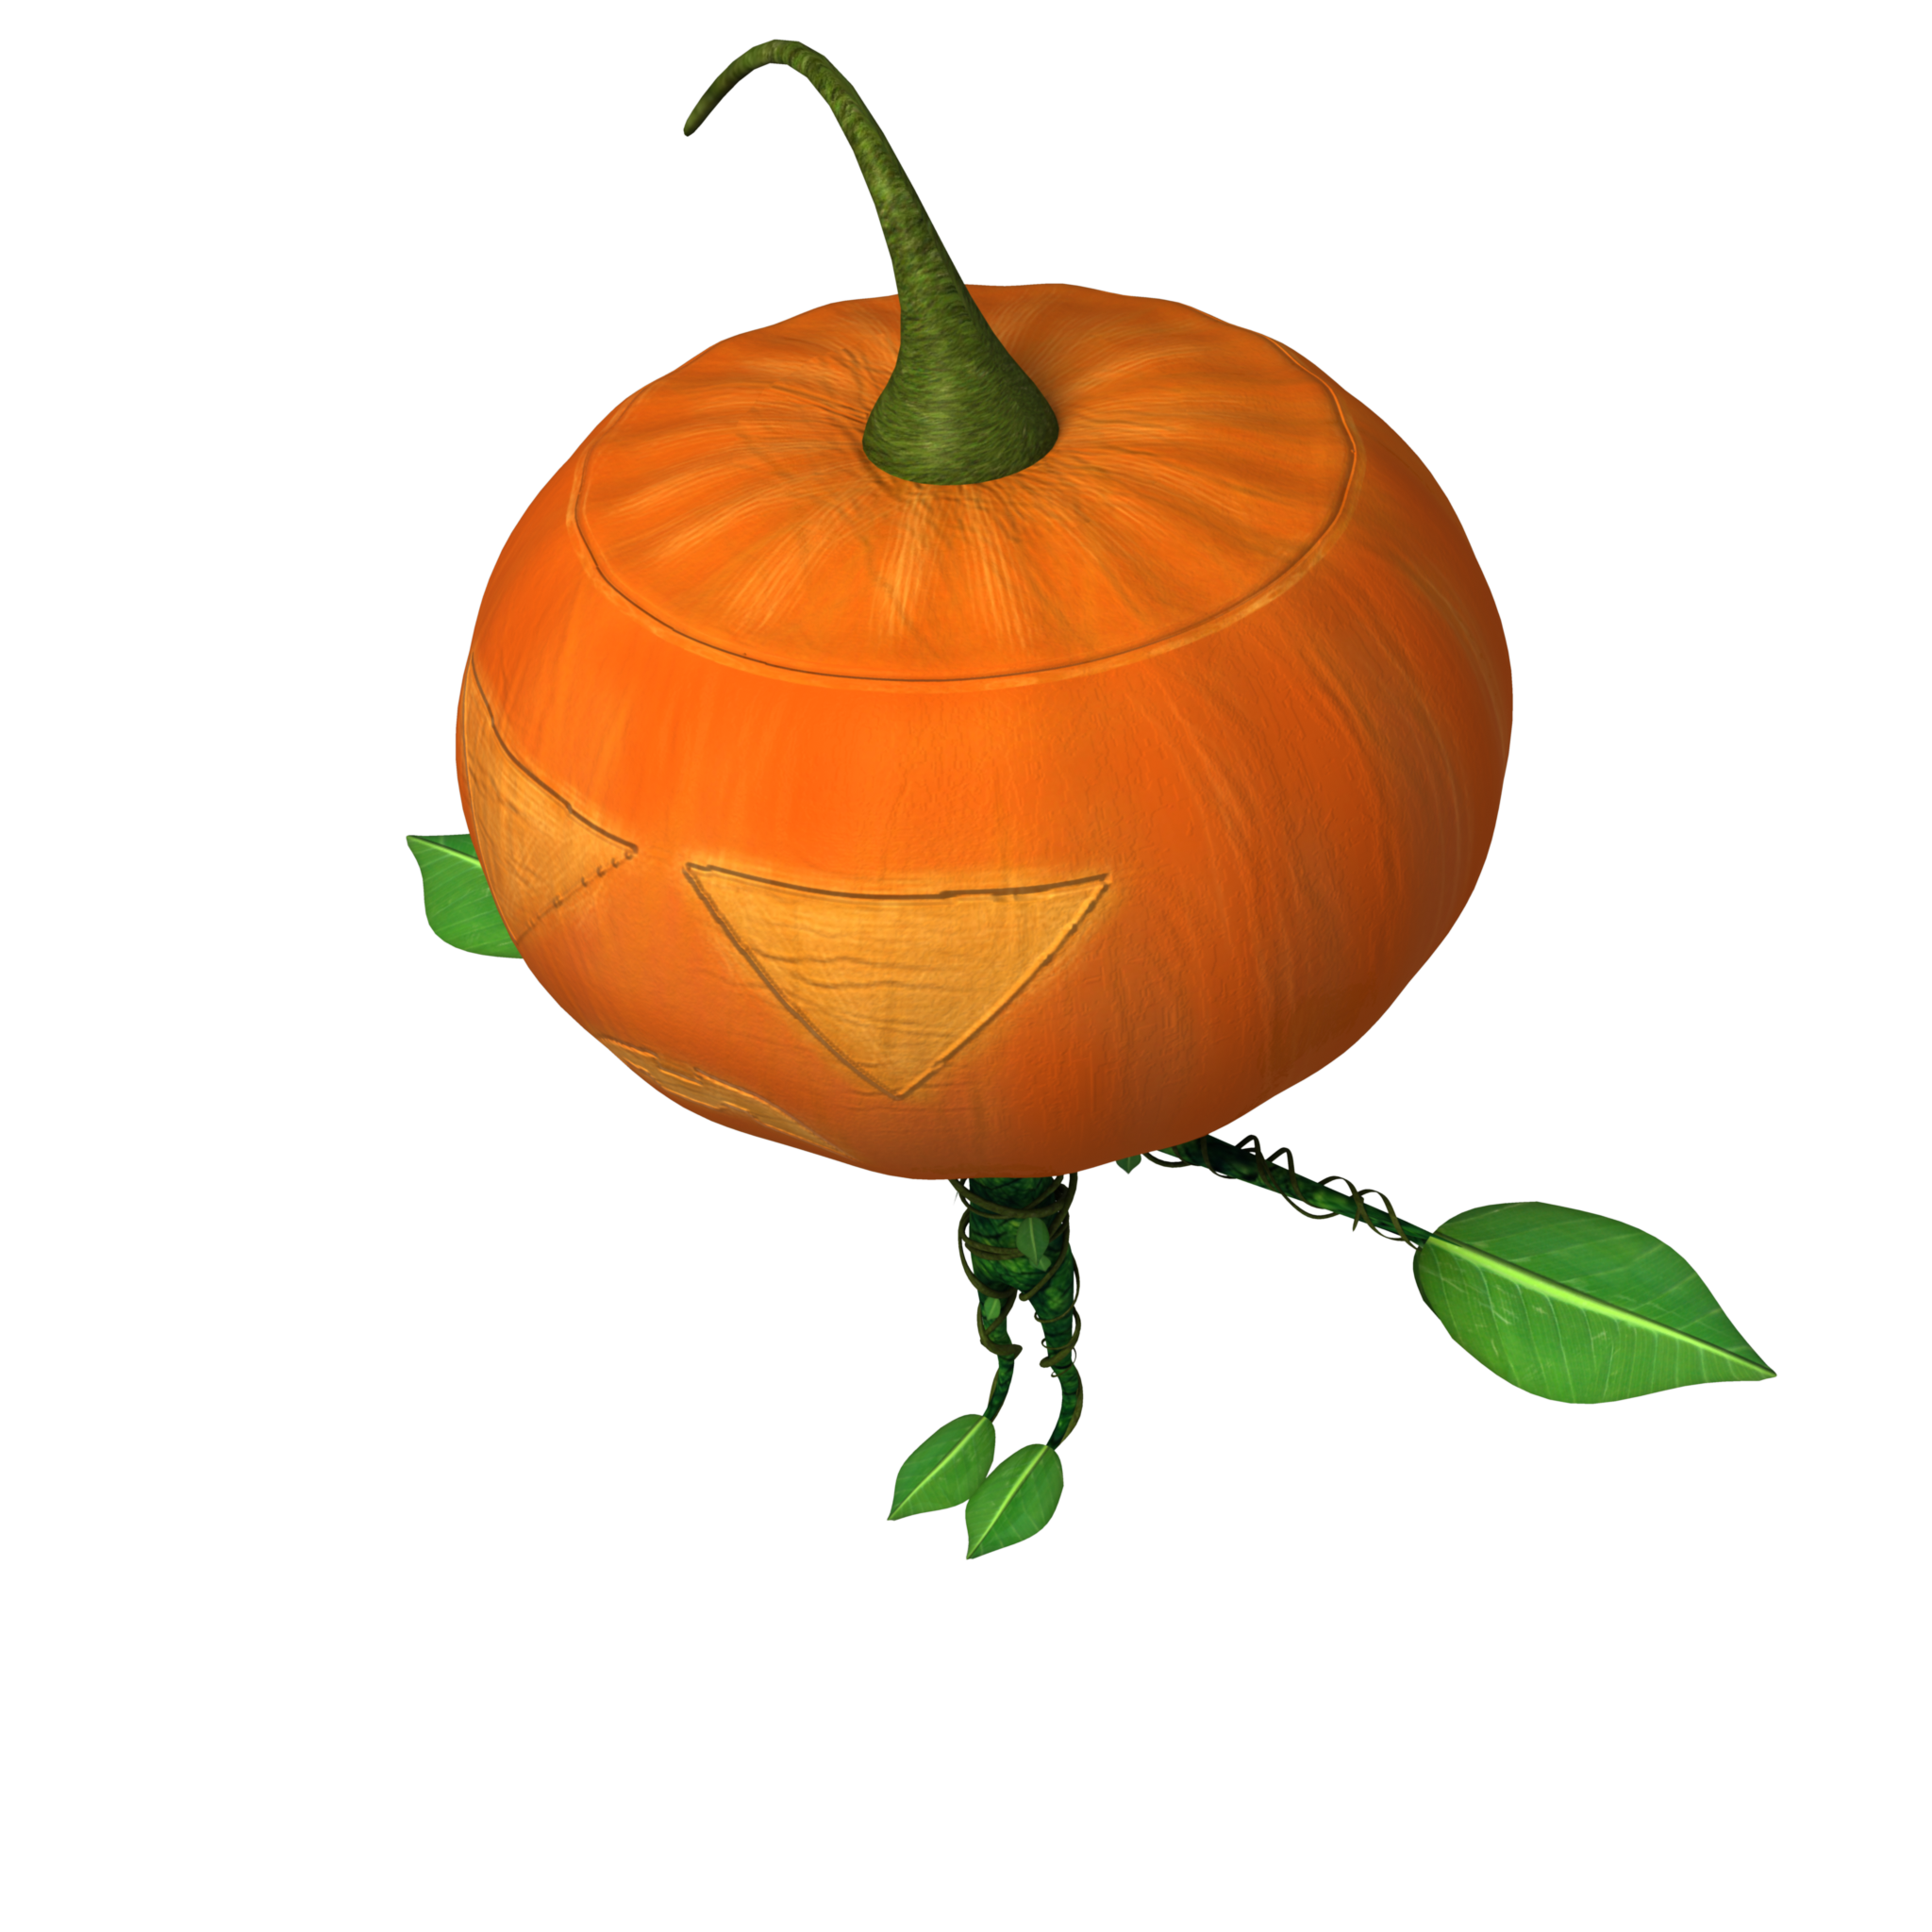 insects in kitchen cabinets pumpkin 3 3d models cgtrader 4698